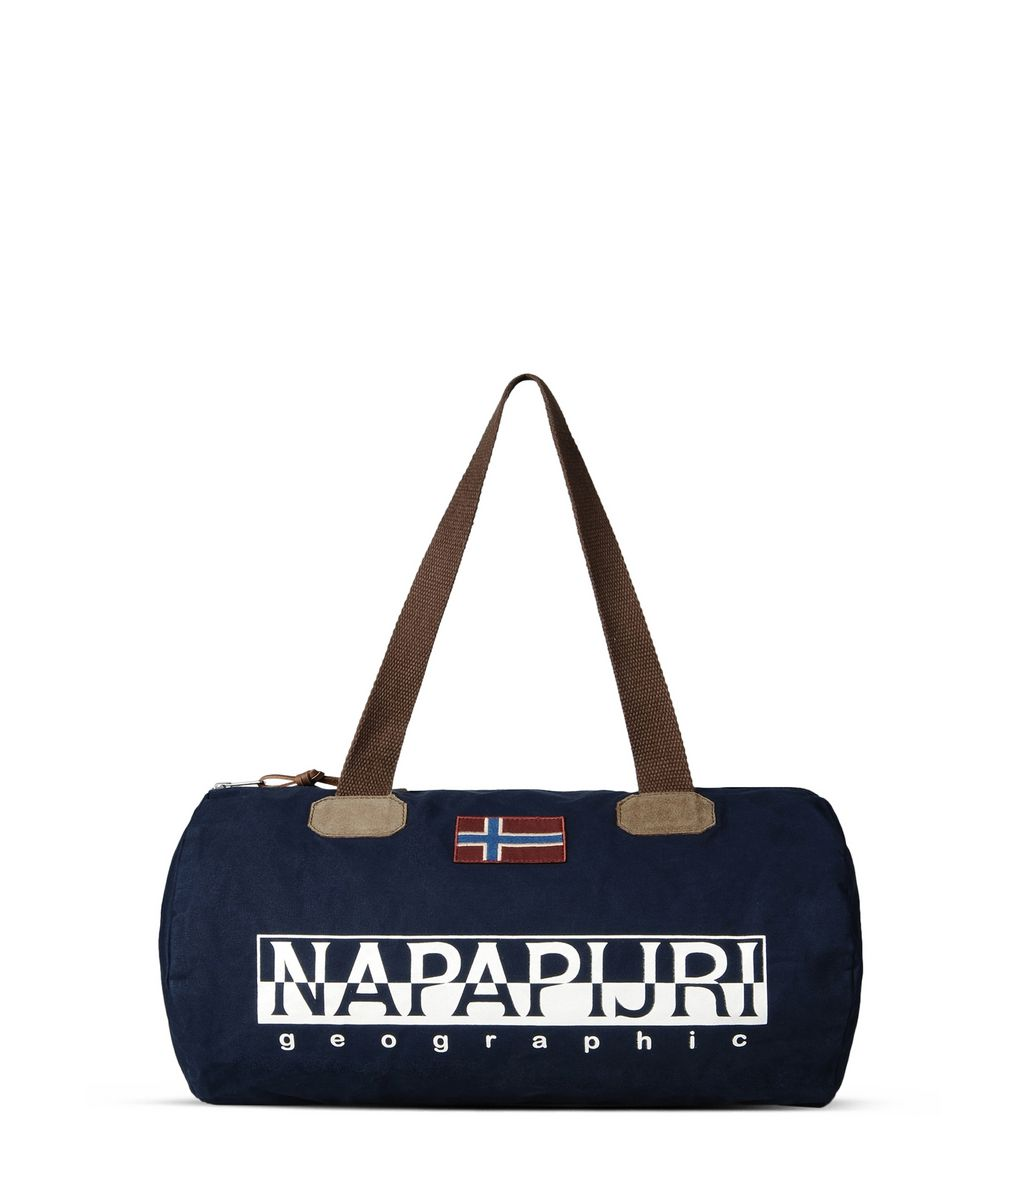 NAPAPIJRI BERING SMALL  TRAVEL BAG,DELTA